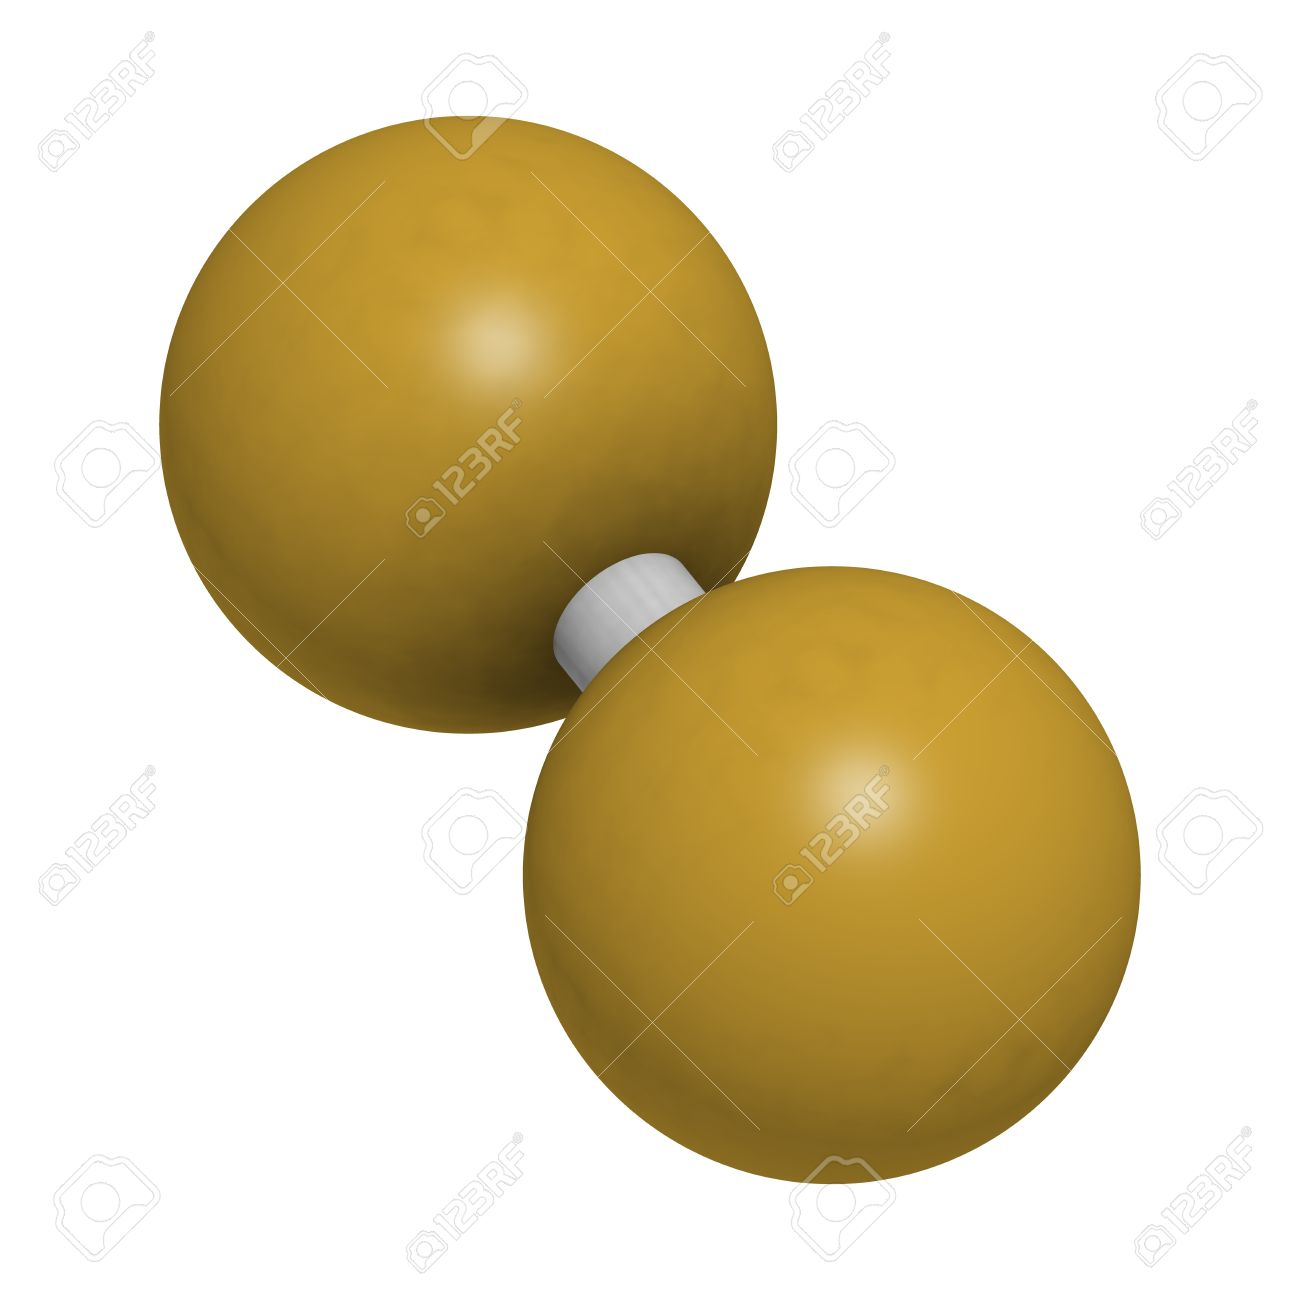 Elemental fluorine f2 molecular model atoms are represented elemental fluorine f2 molecular model atoms are represented as spheres with conventional ccuart Choice Image